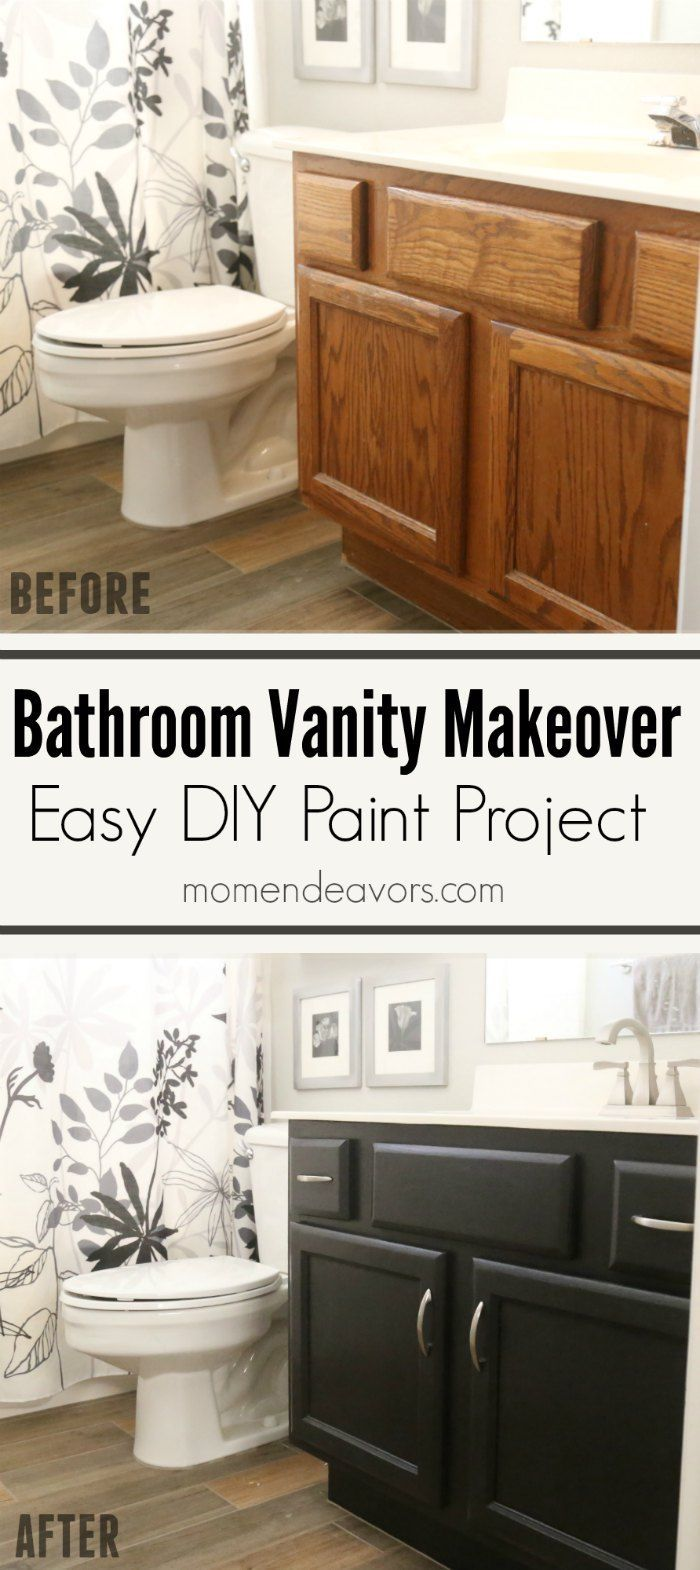 Diy Bathroom Vanity Makeover - Bathroom vanity makeover easy diy home paint project paint suggestions and easy diy tutorial